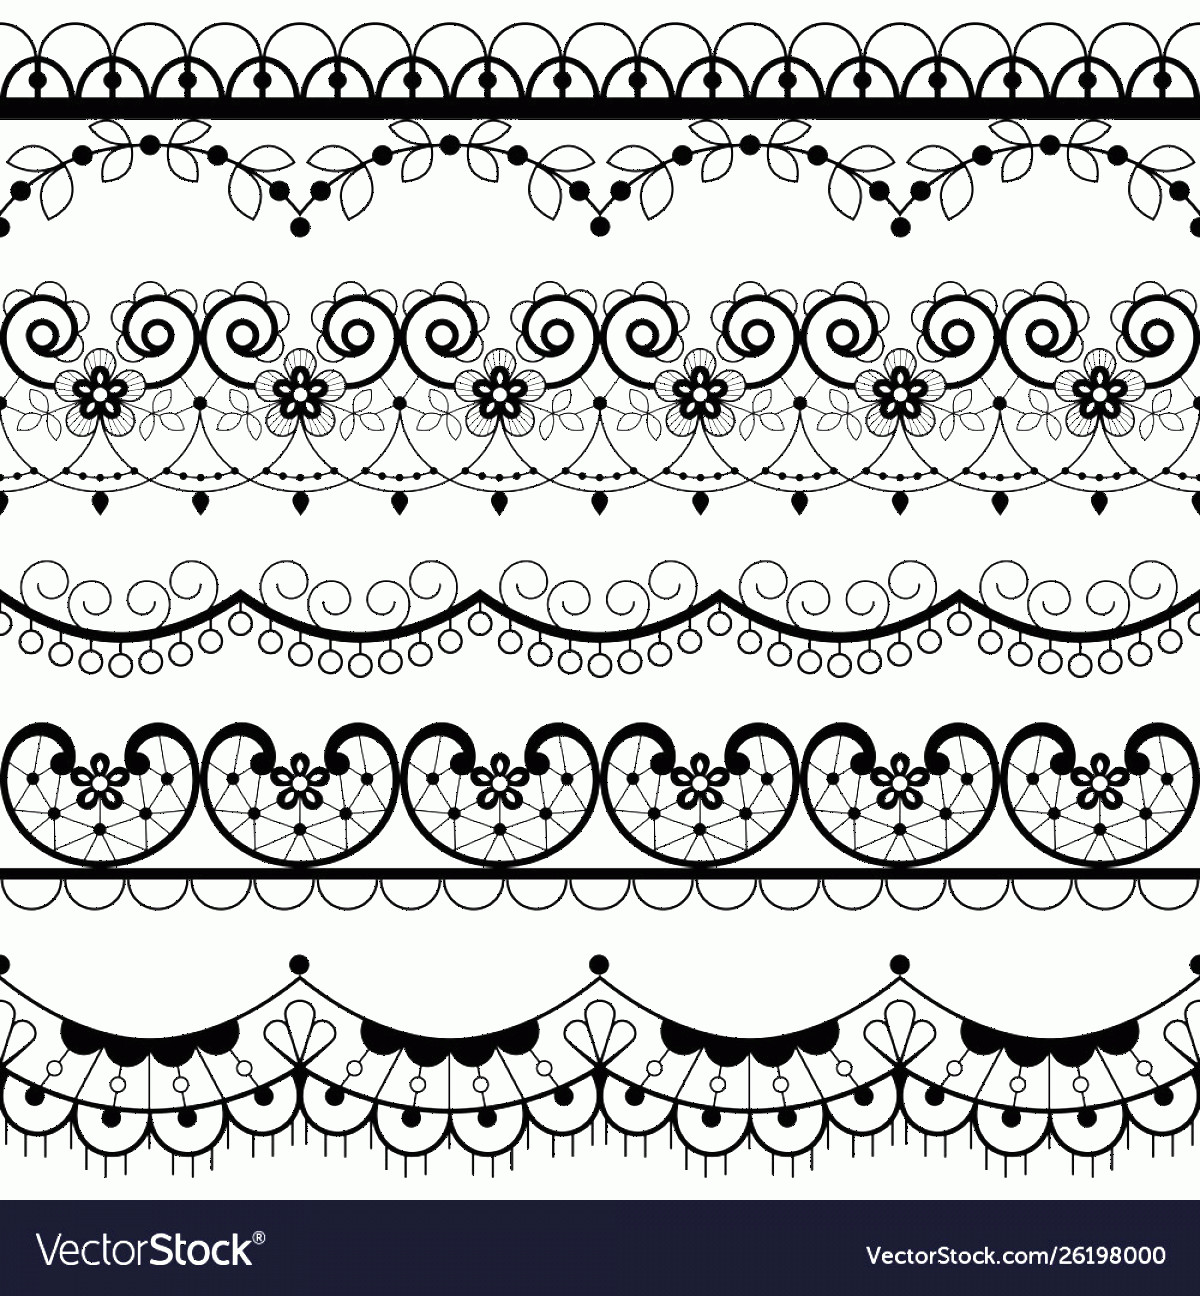 Lace Vector Images Free Clip Art: Retro Lace Seamless Pattern Set Black And White Vector